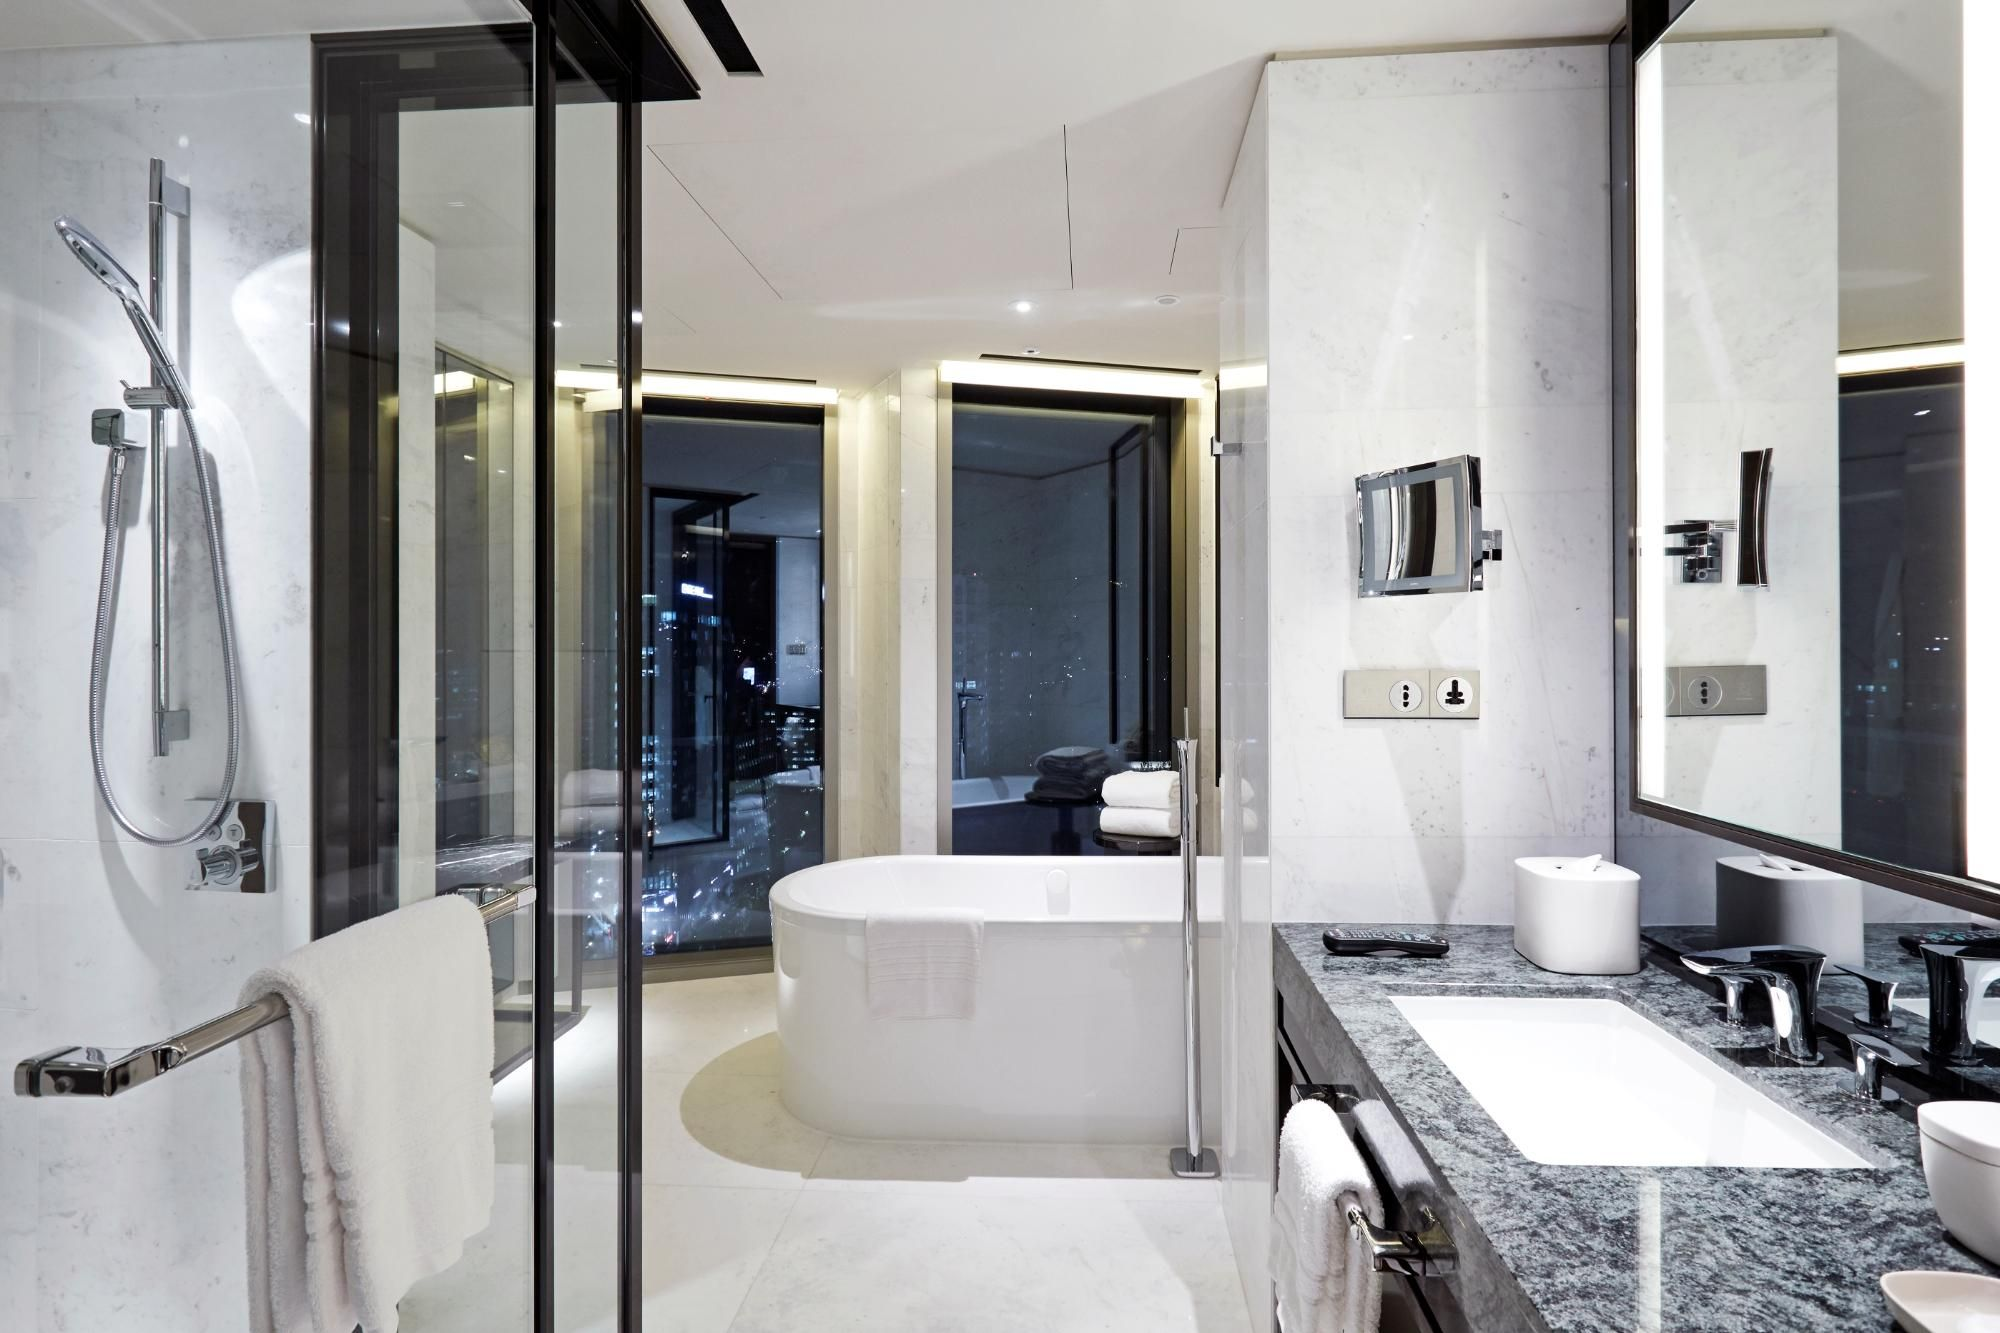 Four seasons hotel seoul south korea bathrooms for Design hotel seoul